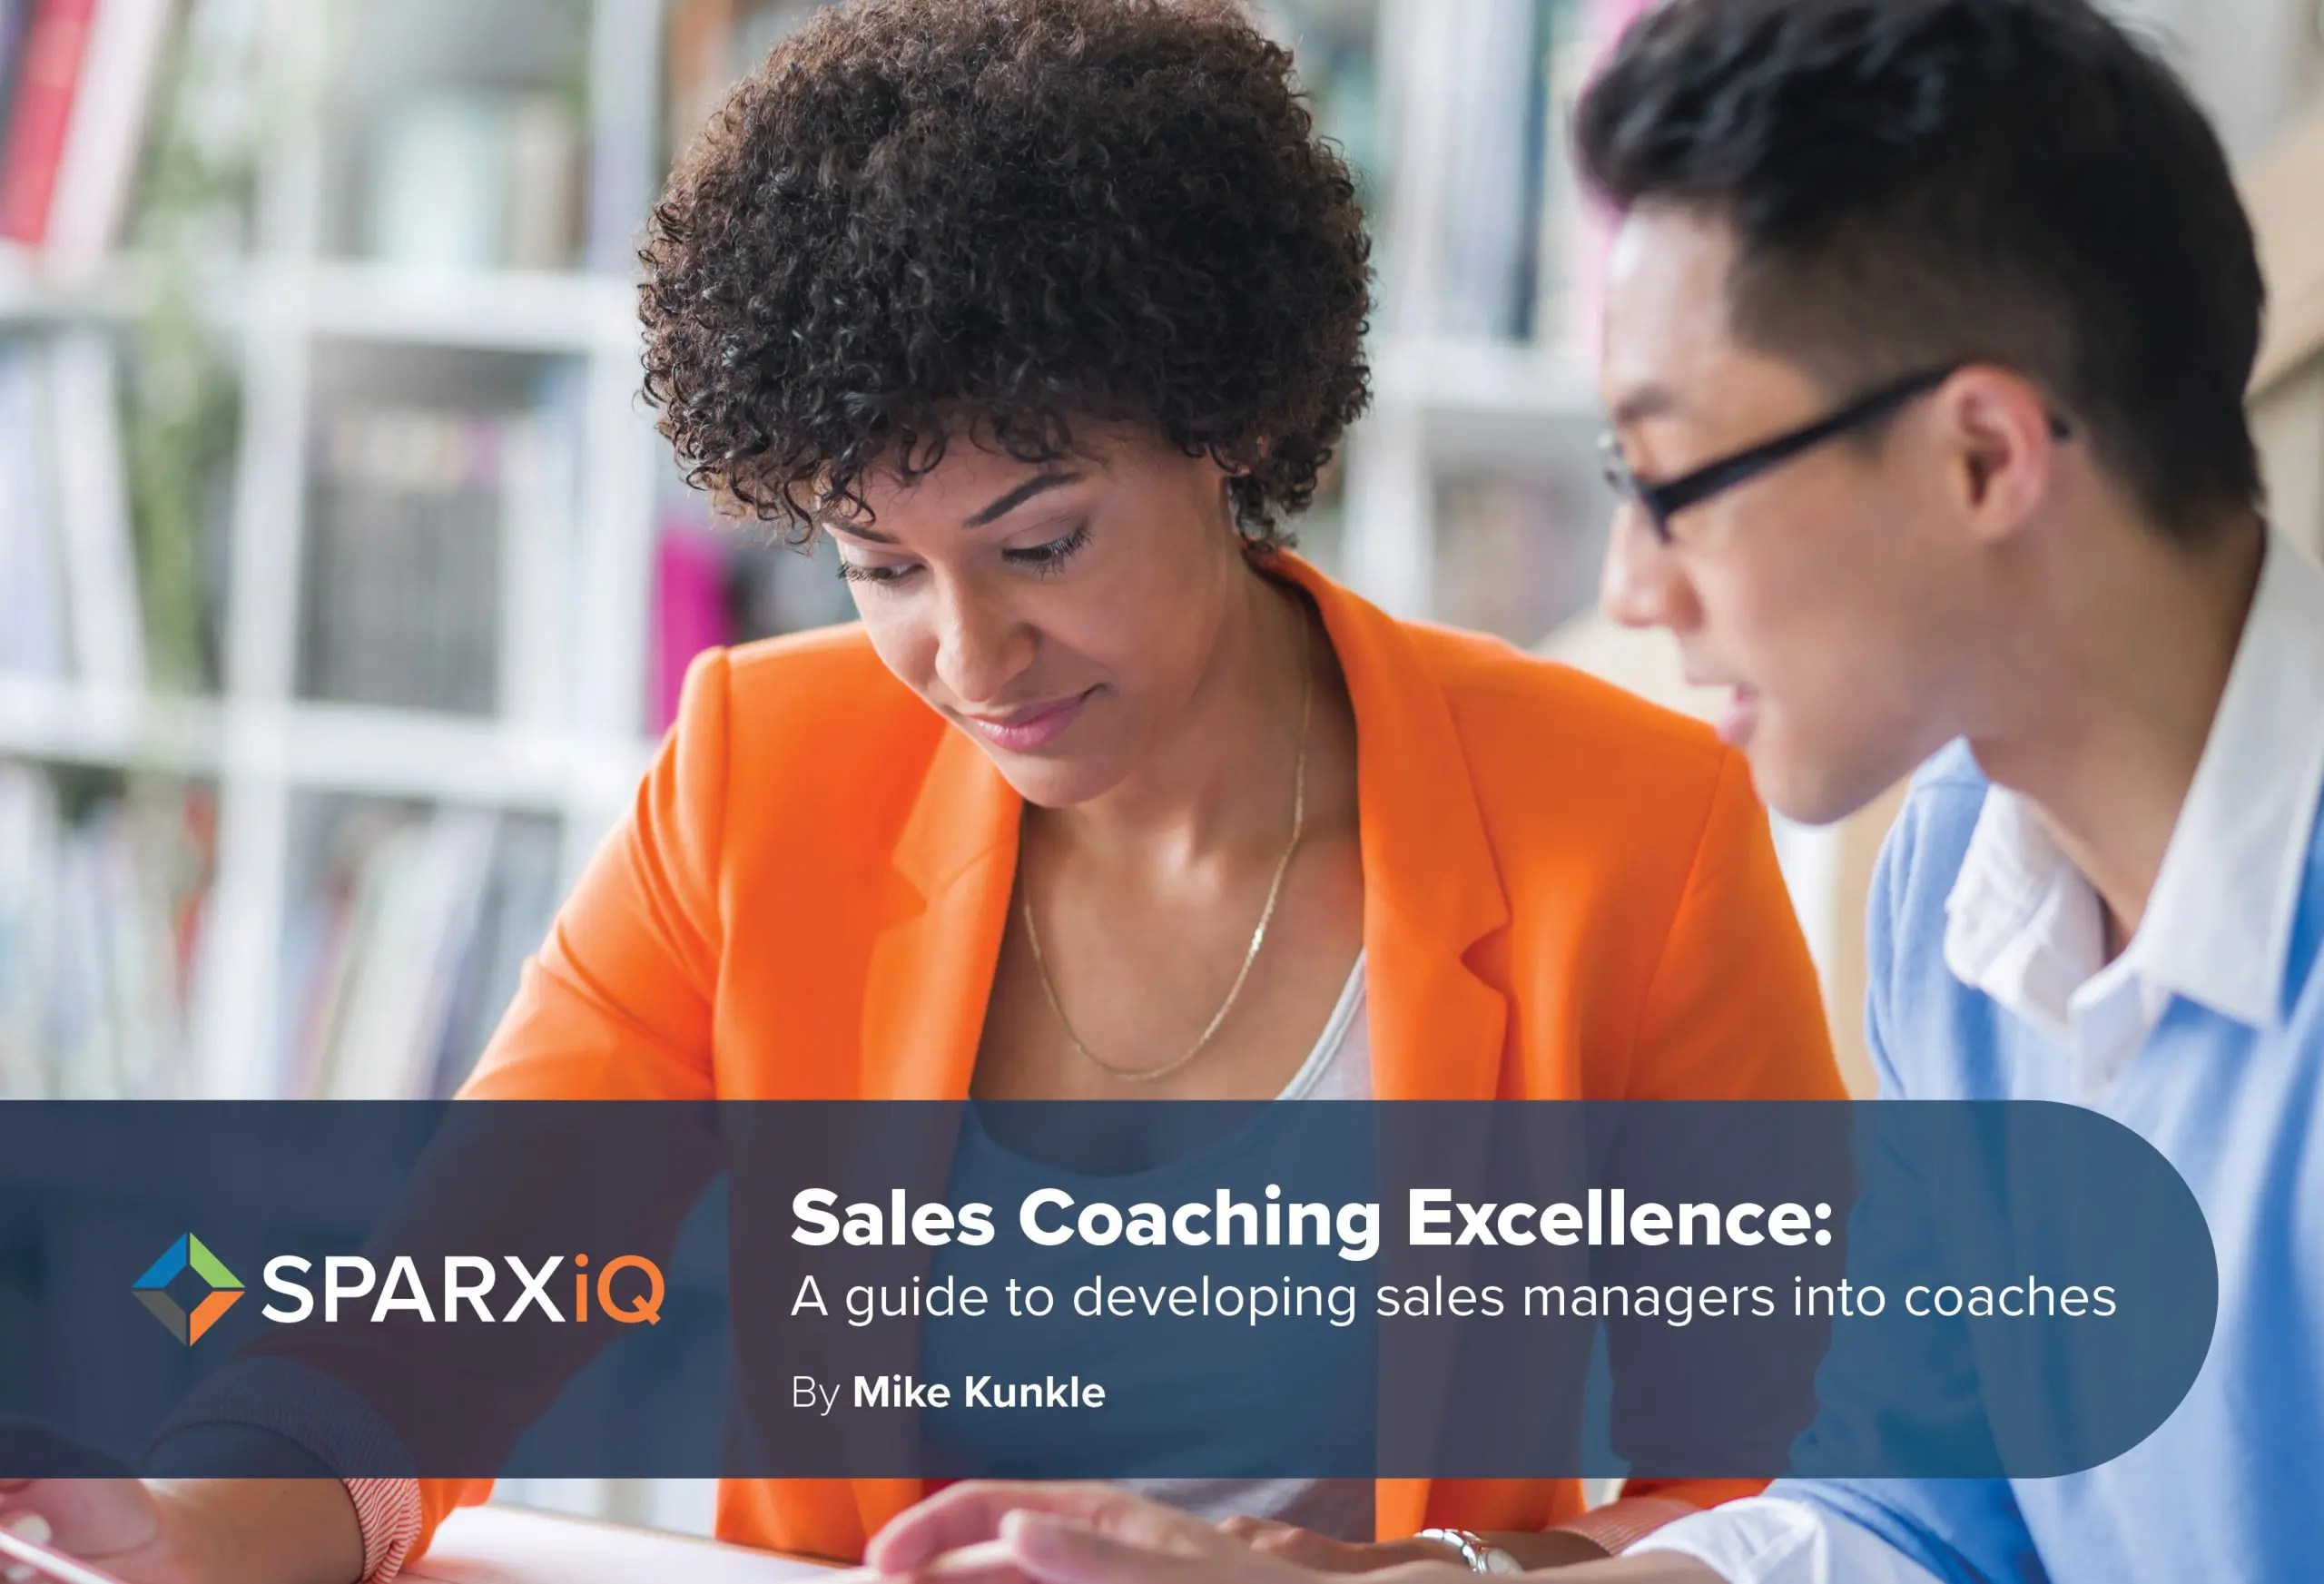 Sales Coaching Excellence